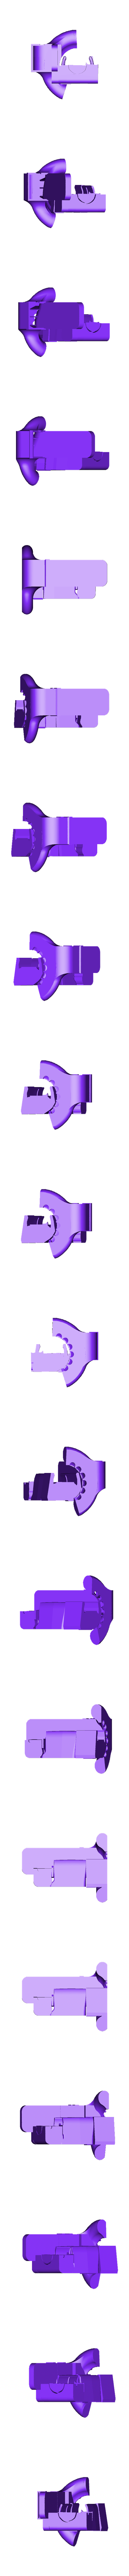 fan_shroud_with_support.stl Download free STL file E3D Extruder • 3D printer template, indigo4